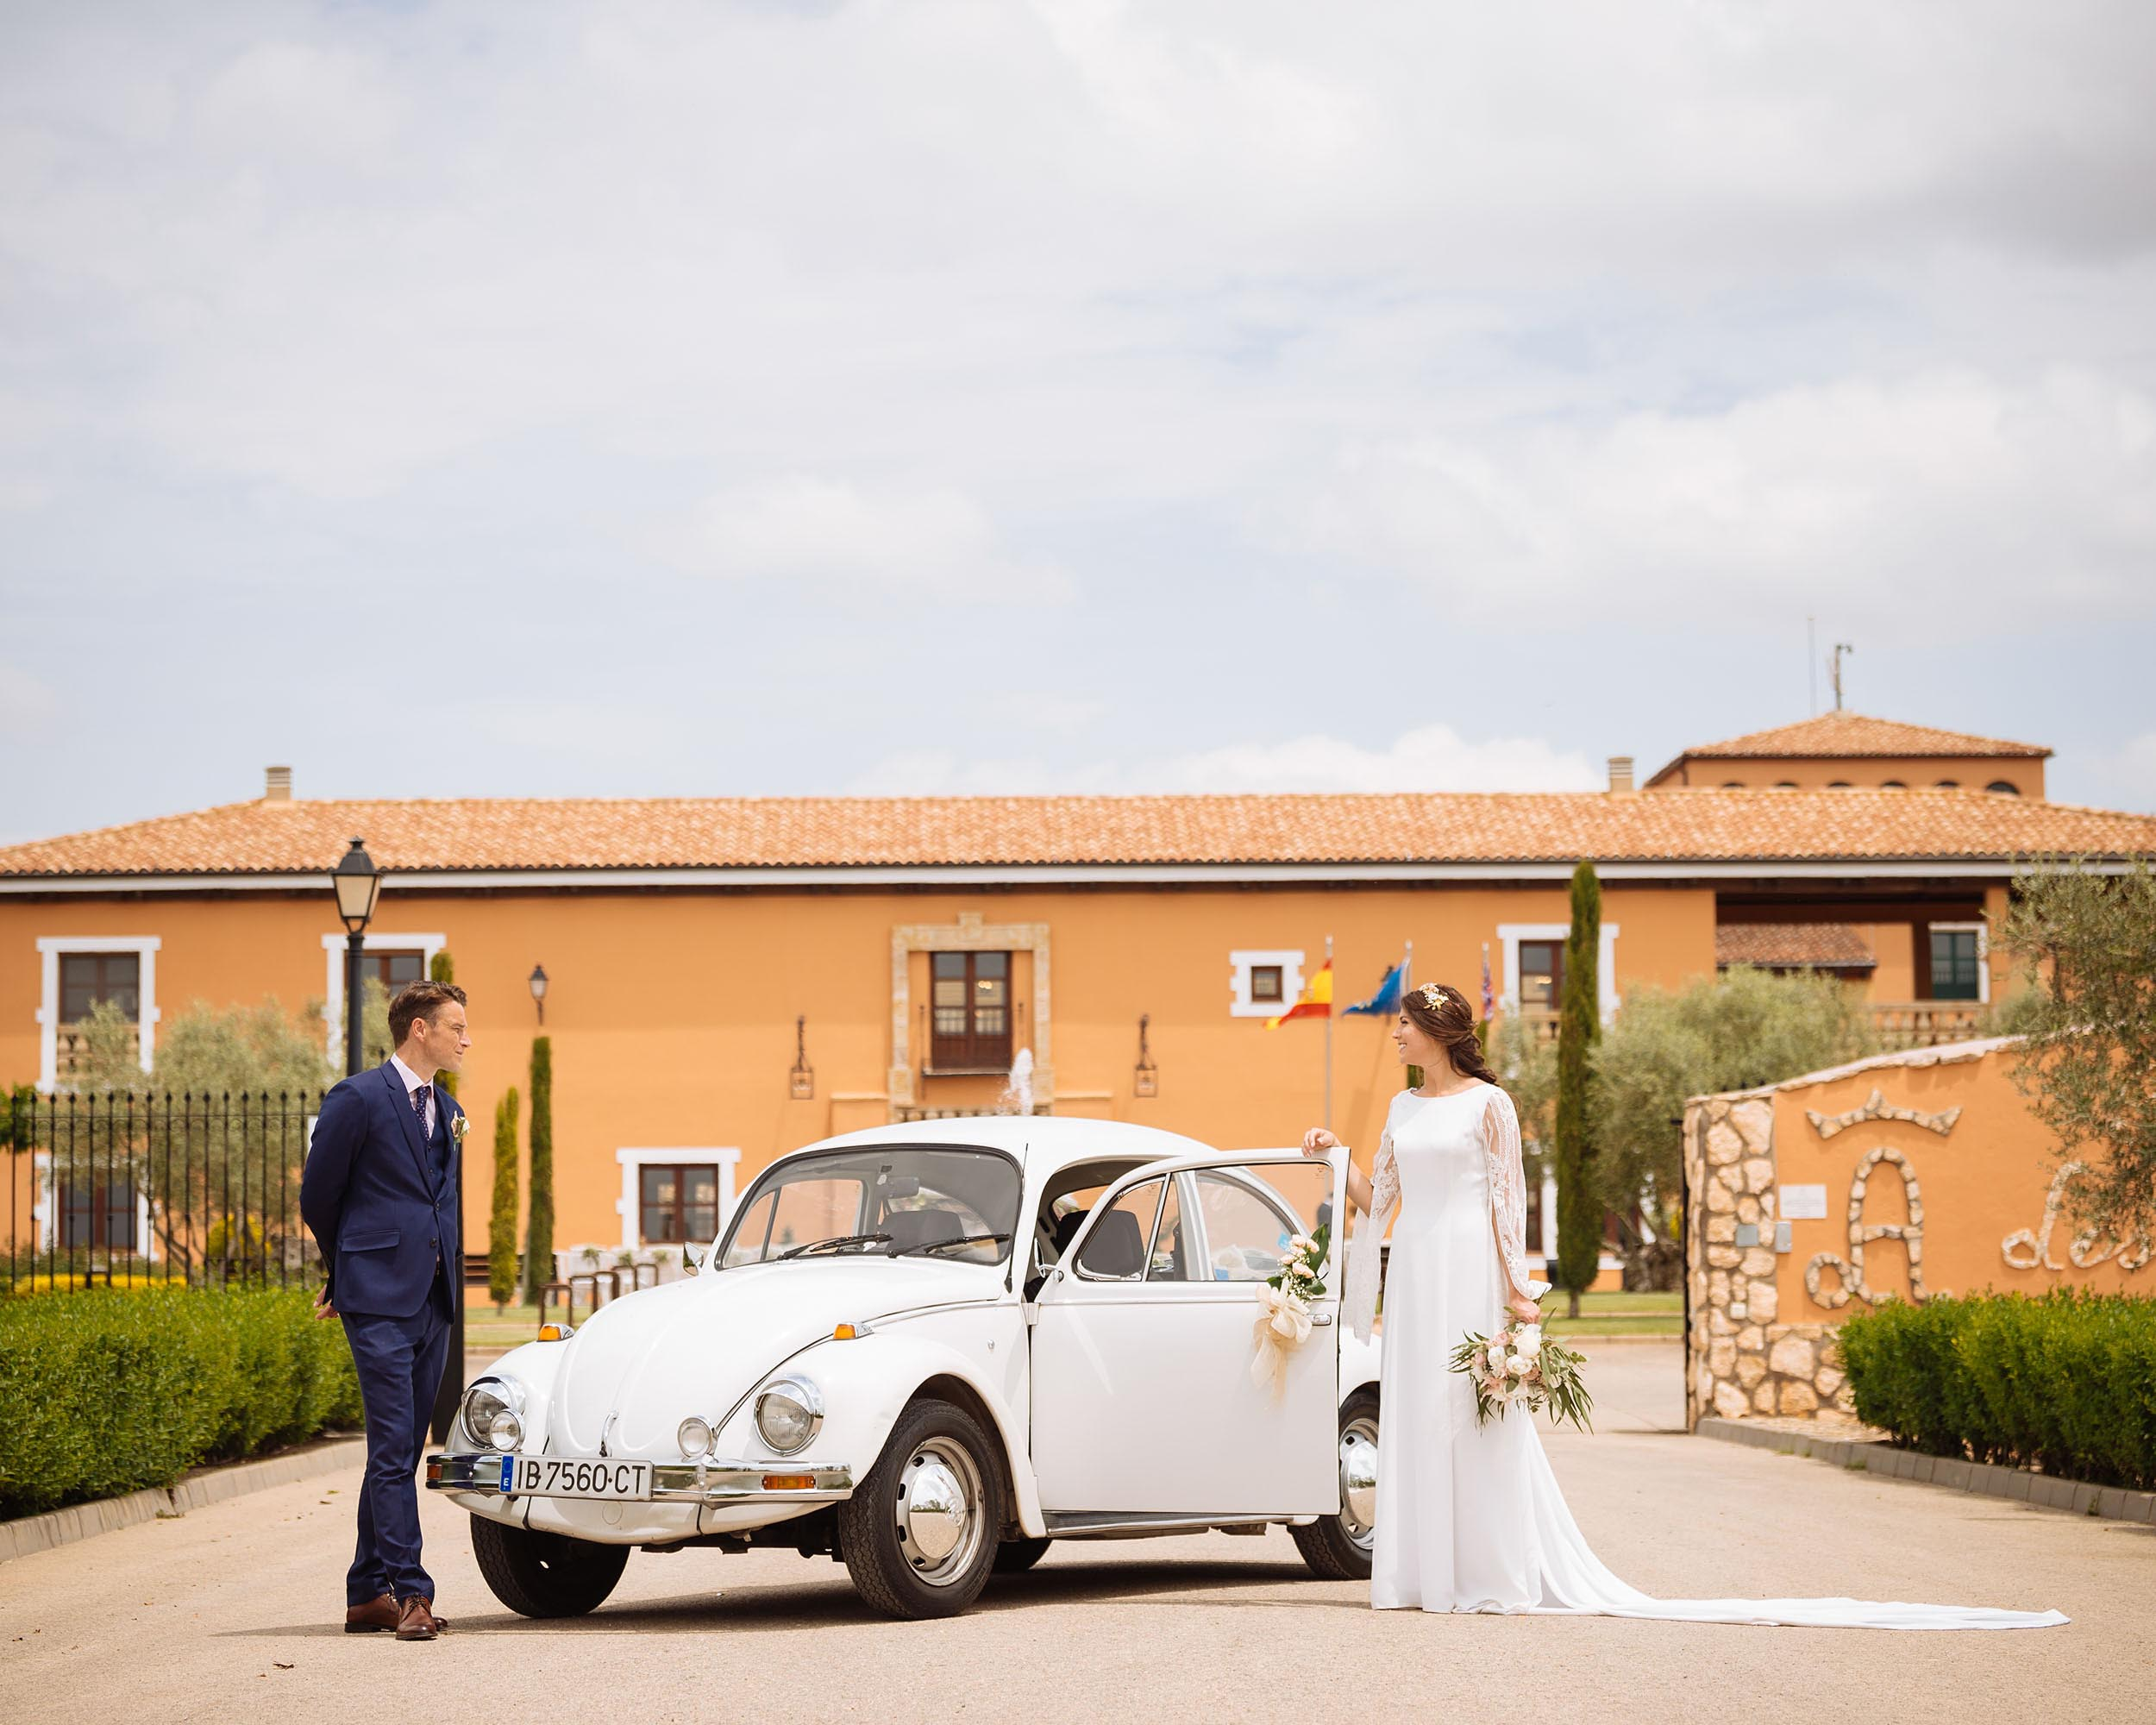 wedding-day-car-vintage-bride-groom-volkswagon-beetle